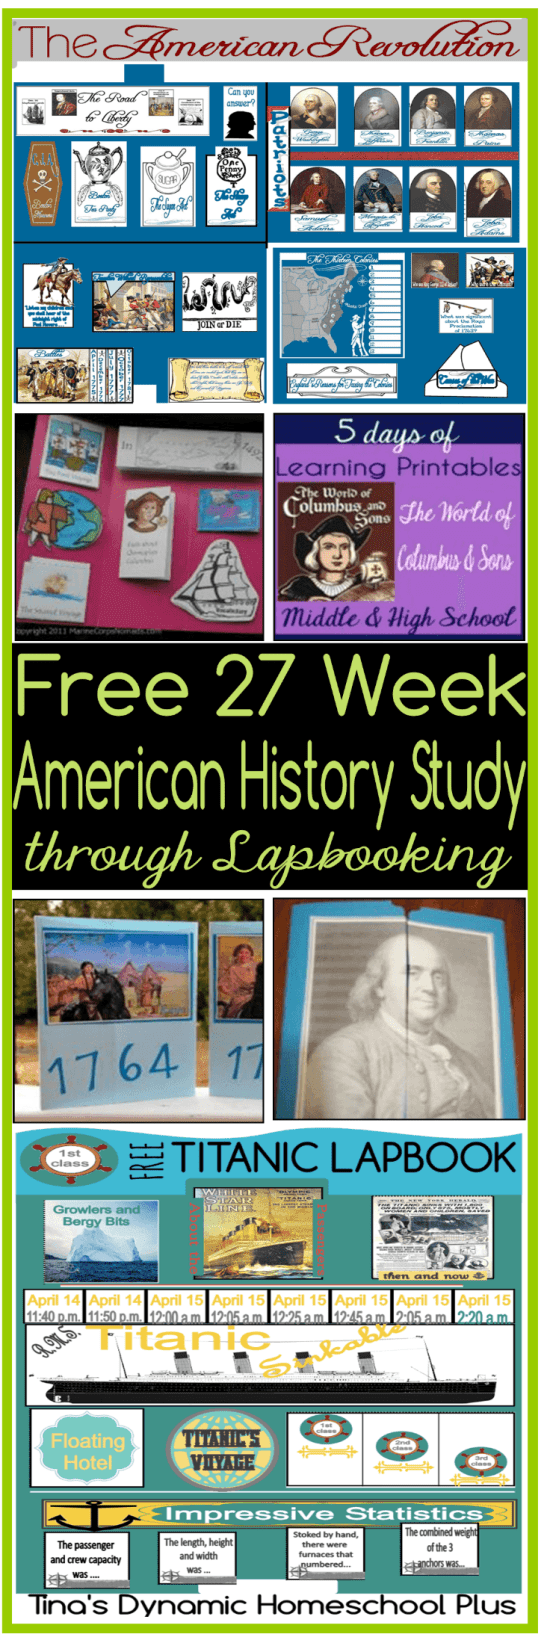 Free-27-Week-American-History-Study-through-Lapbooking-In-Chronological-Order-@-Tinas-Dynamic-Homeschool-Plus